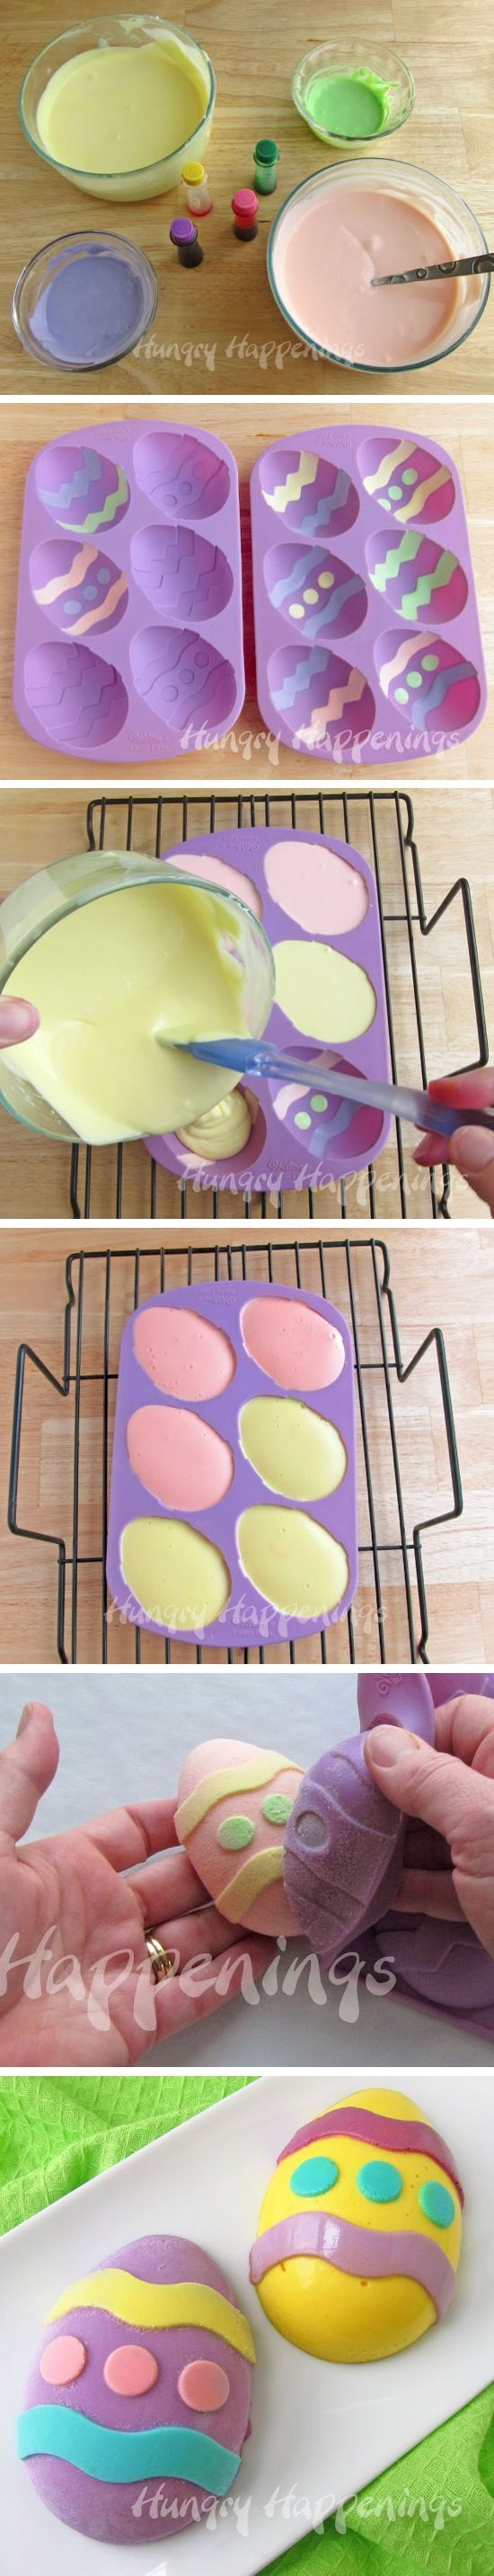 Easter Egg Cheesecake  Recipe By Photo